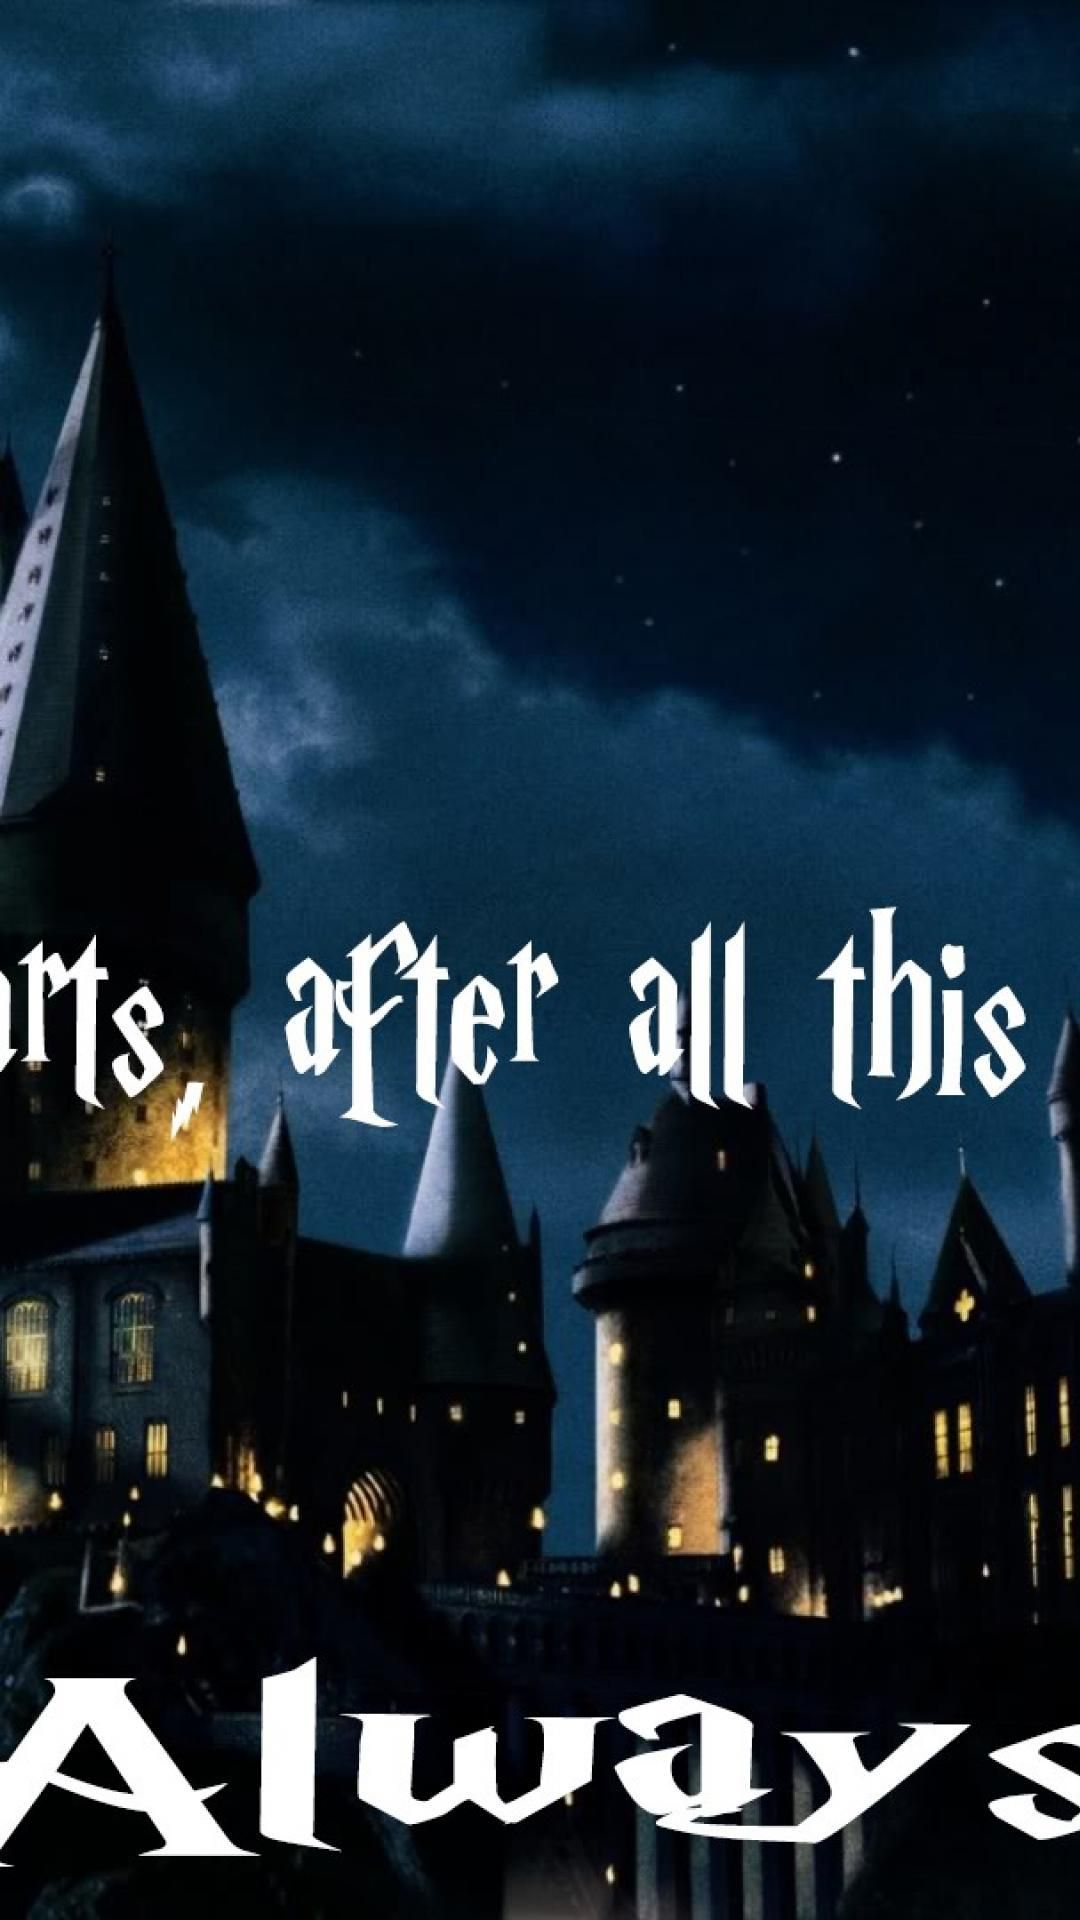 Harry Potter Wallpaper Android in 2020 Harry potter